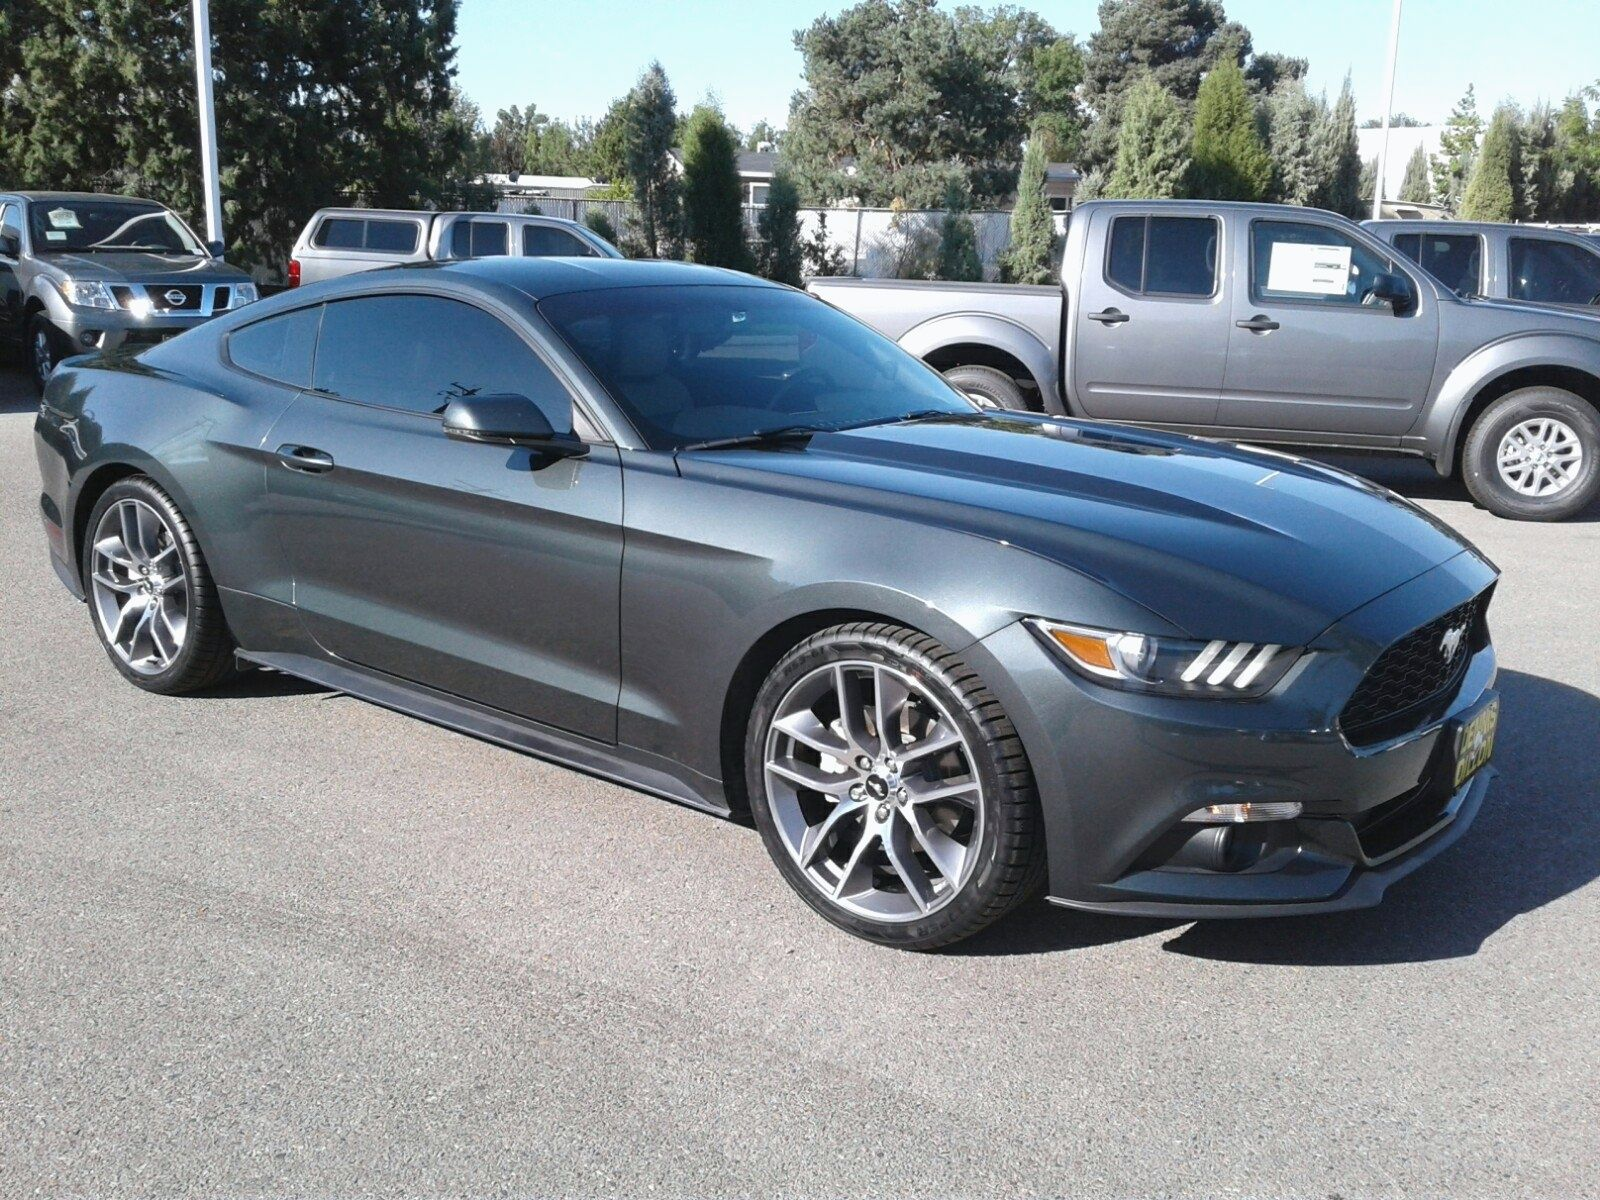 Pre Owned 2015 Ford Mustang Ecoboost Premium Rwd 2dr Car 2015 Ford Mustang Ecoboost Mustang Ecoboost 2015 Ford Mustang